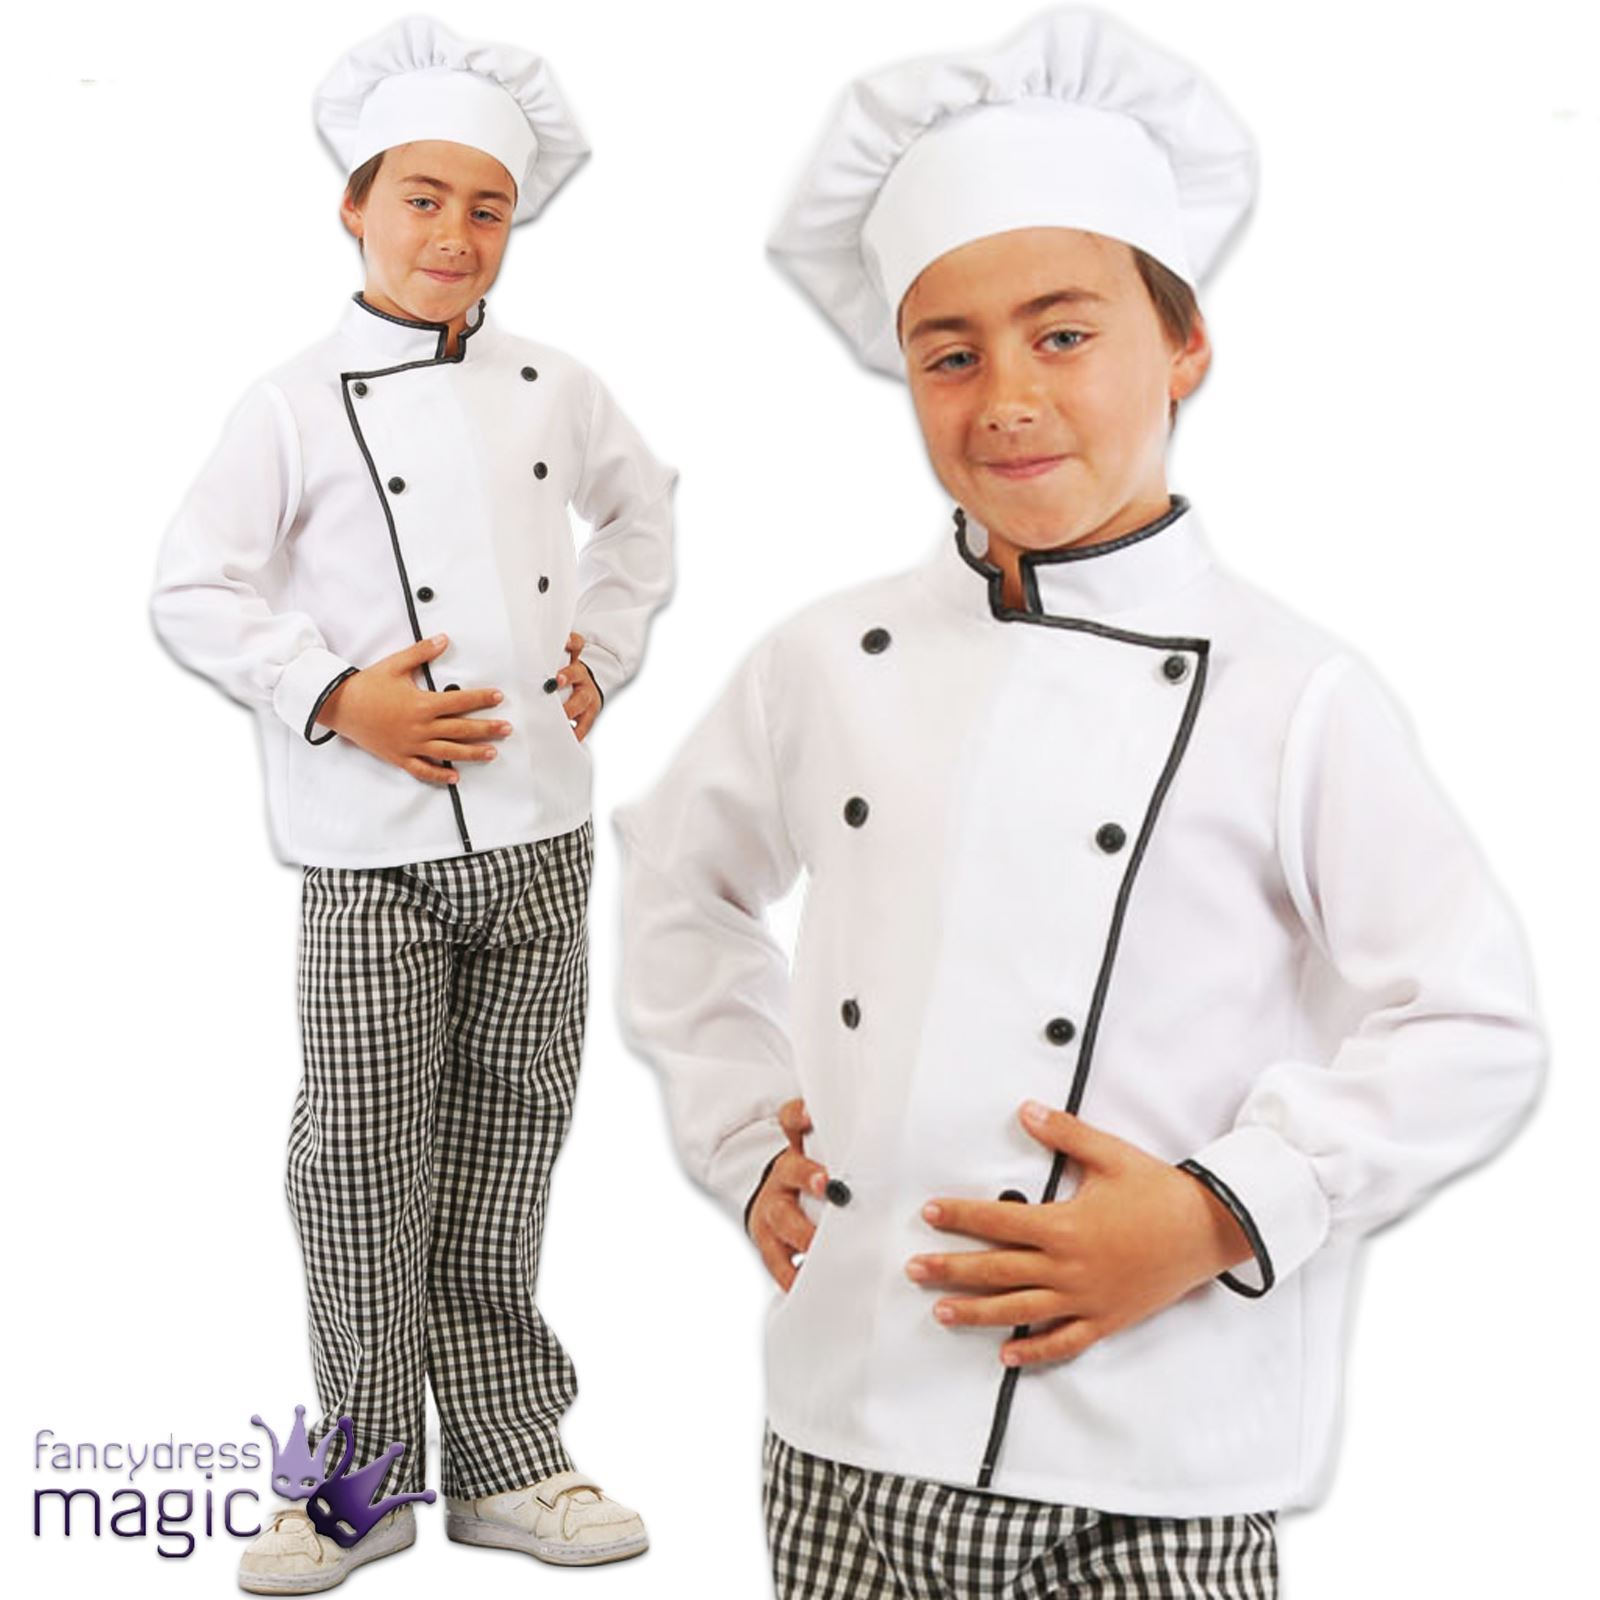 CHILDRENS GIRLS BOYS KIDS CHEF CHEFS COOK COSTUME OUTFIT WHITES HAT